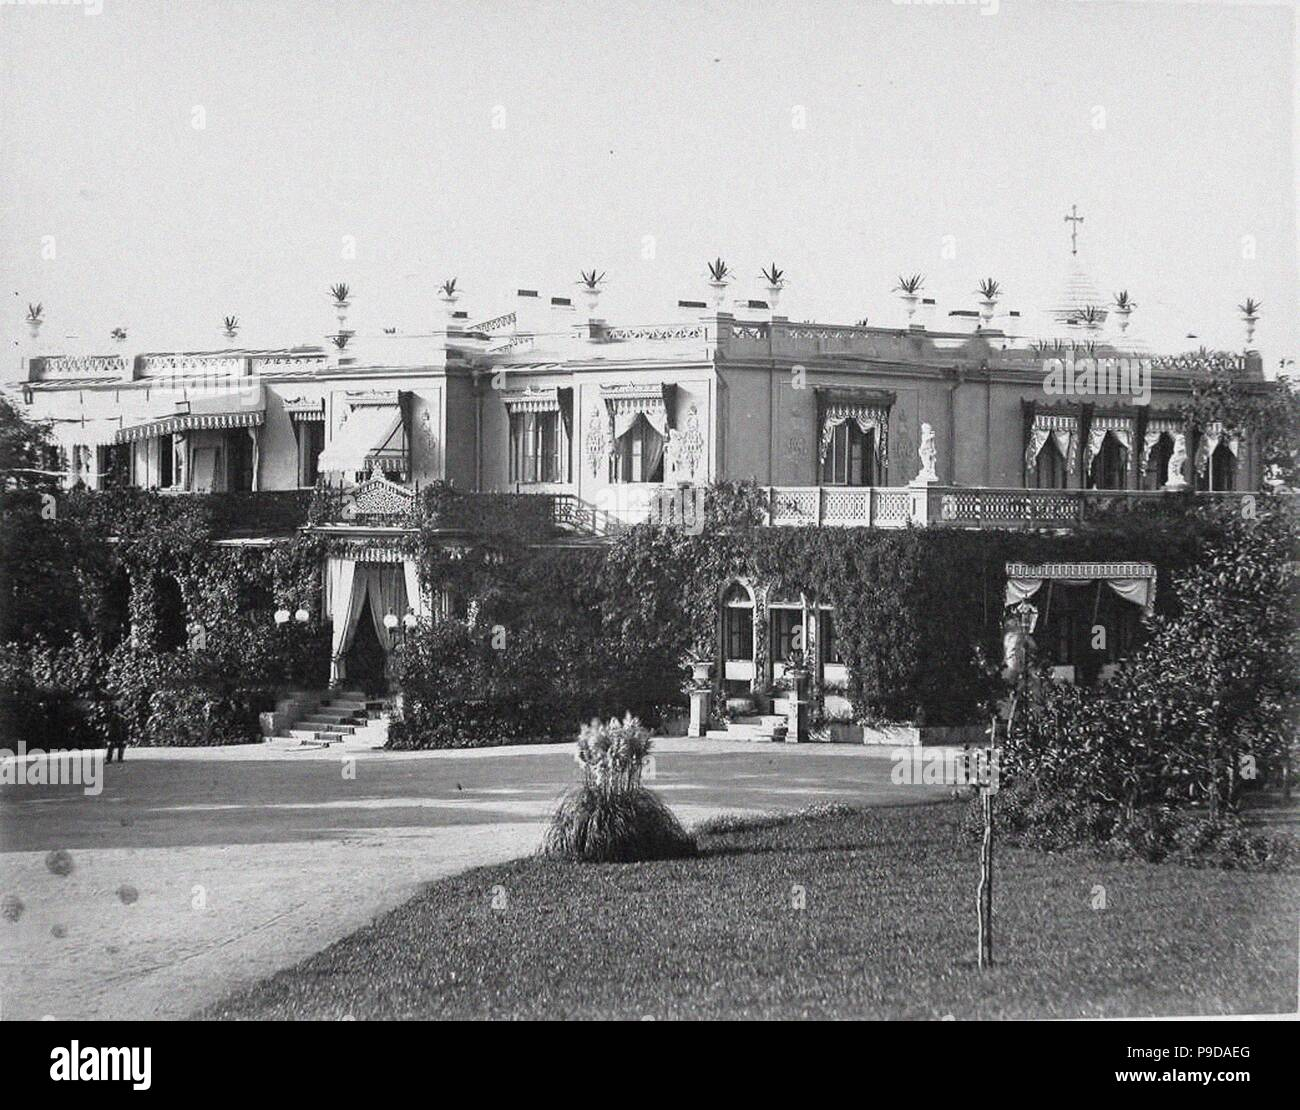 The Livadiya palace. Museum: PRIVATE COLLECTION. - Stock Image